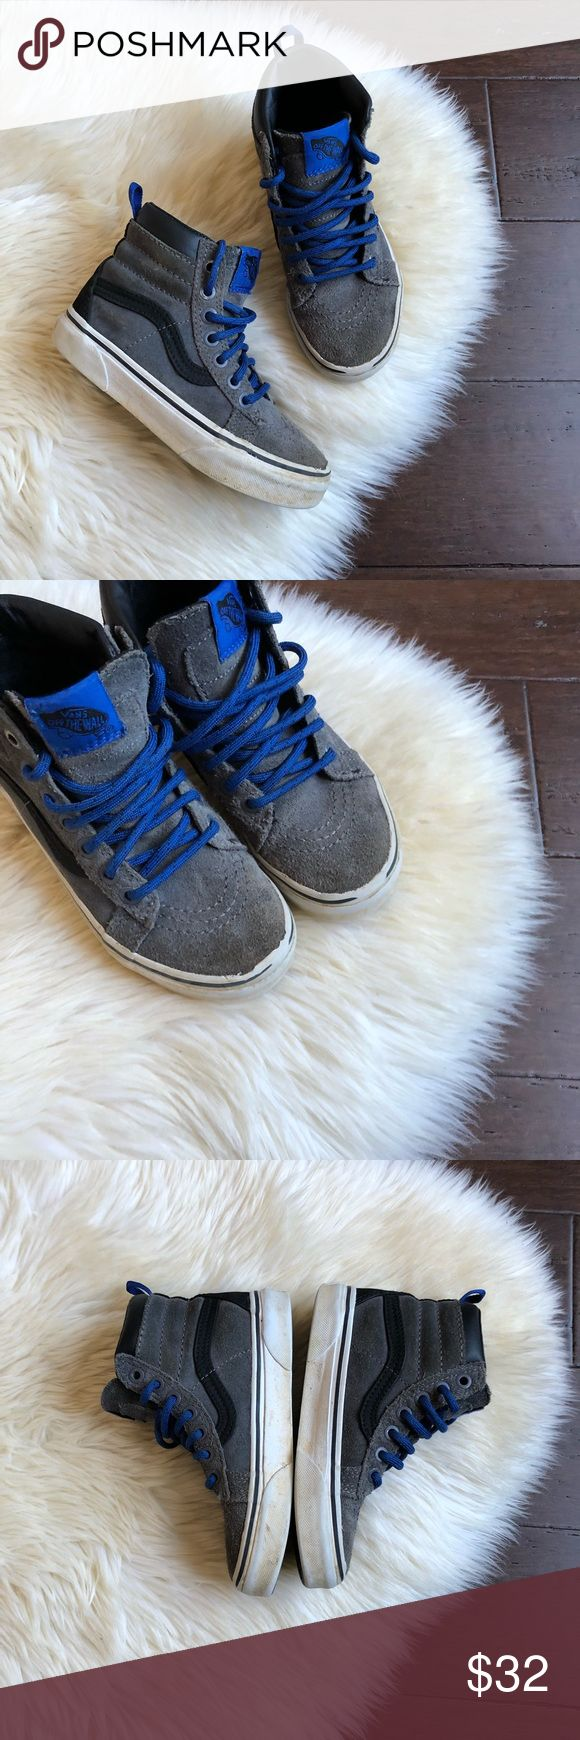 Boys Vans High Top Gray Black Blue Sneakers 13 Boys Vans High Top Gray Black Sneakers   Brand - Vans Size - 13  Color - Blue, Gray & Black  Good condition, they show wear. Shoe strings unraveling on the ends, see pics! Vans Shoes Sneakers